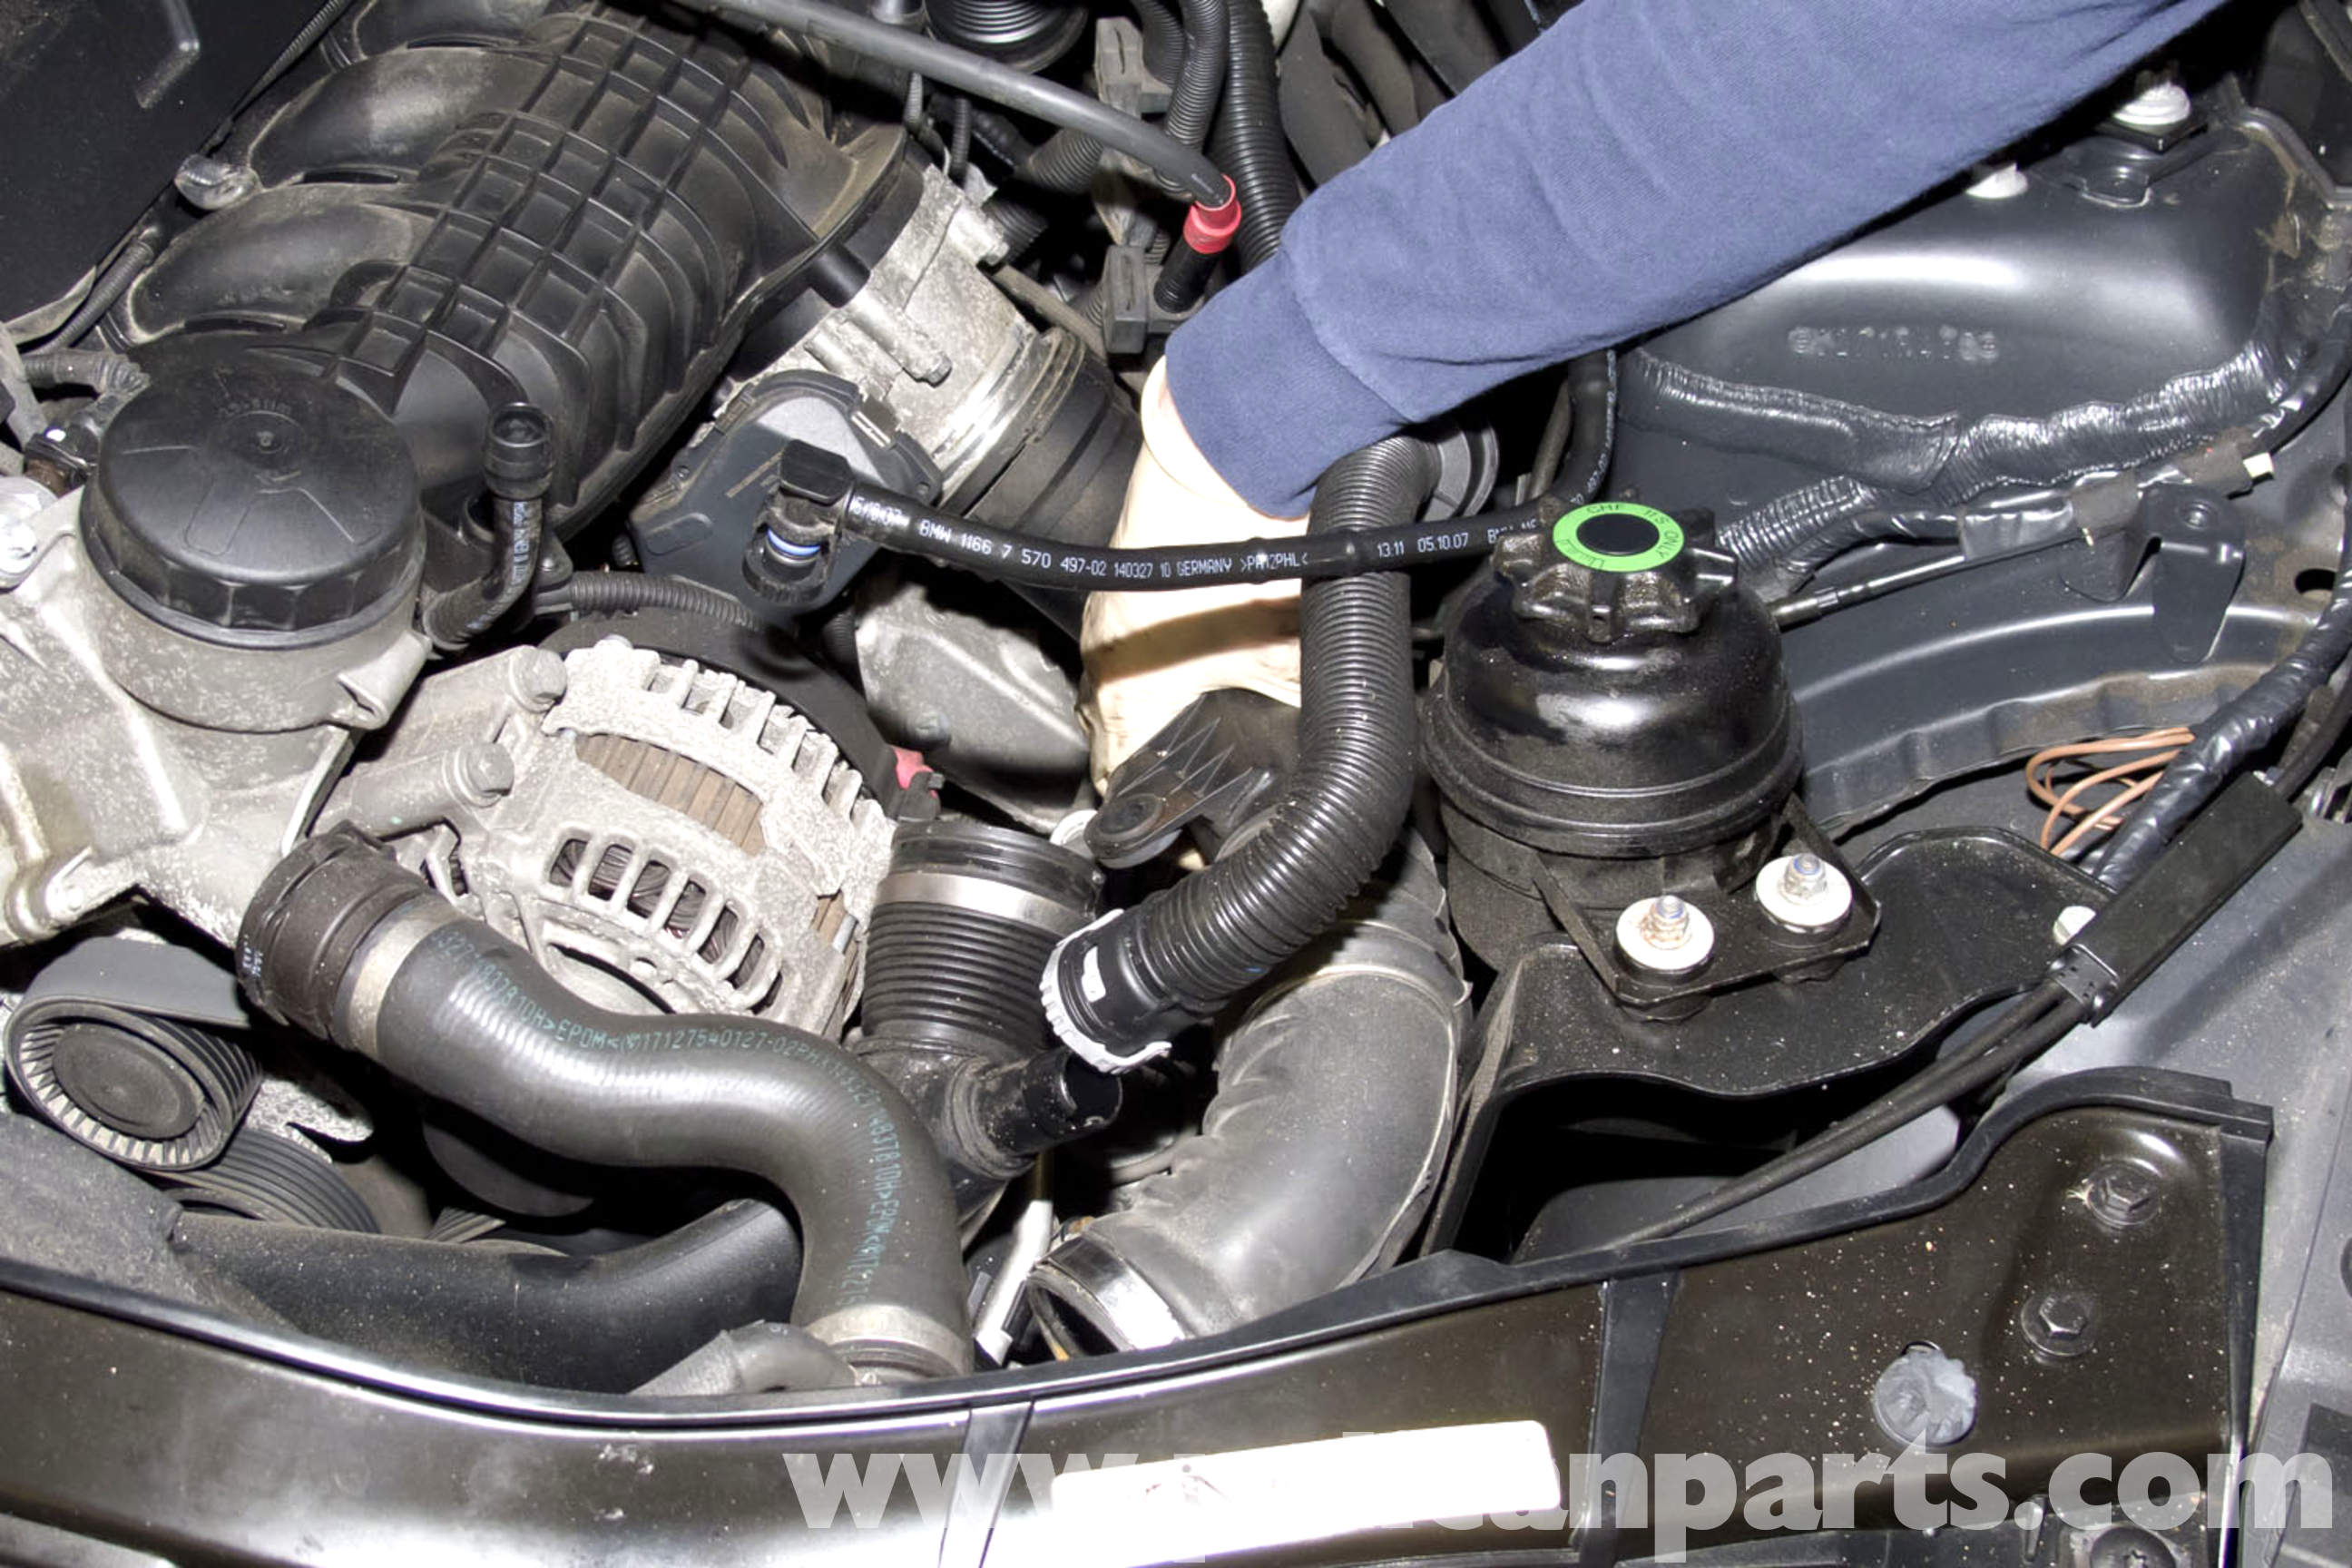 Bmw E90 Power Steering Reservoir Replacement E91 E92 E93 Detailed Bracketry Installation Diagram Large Image Extra